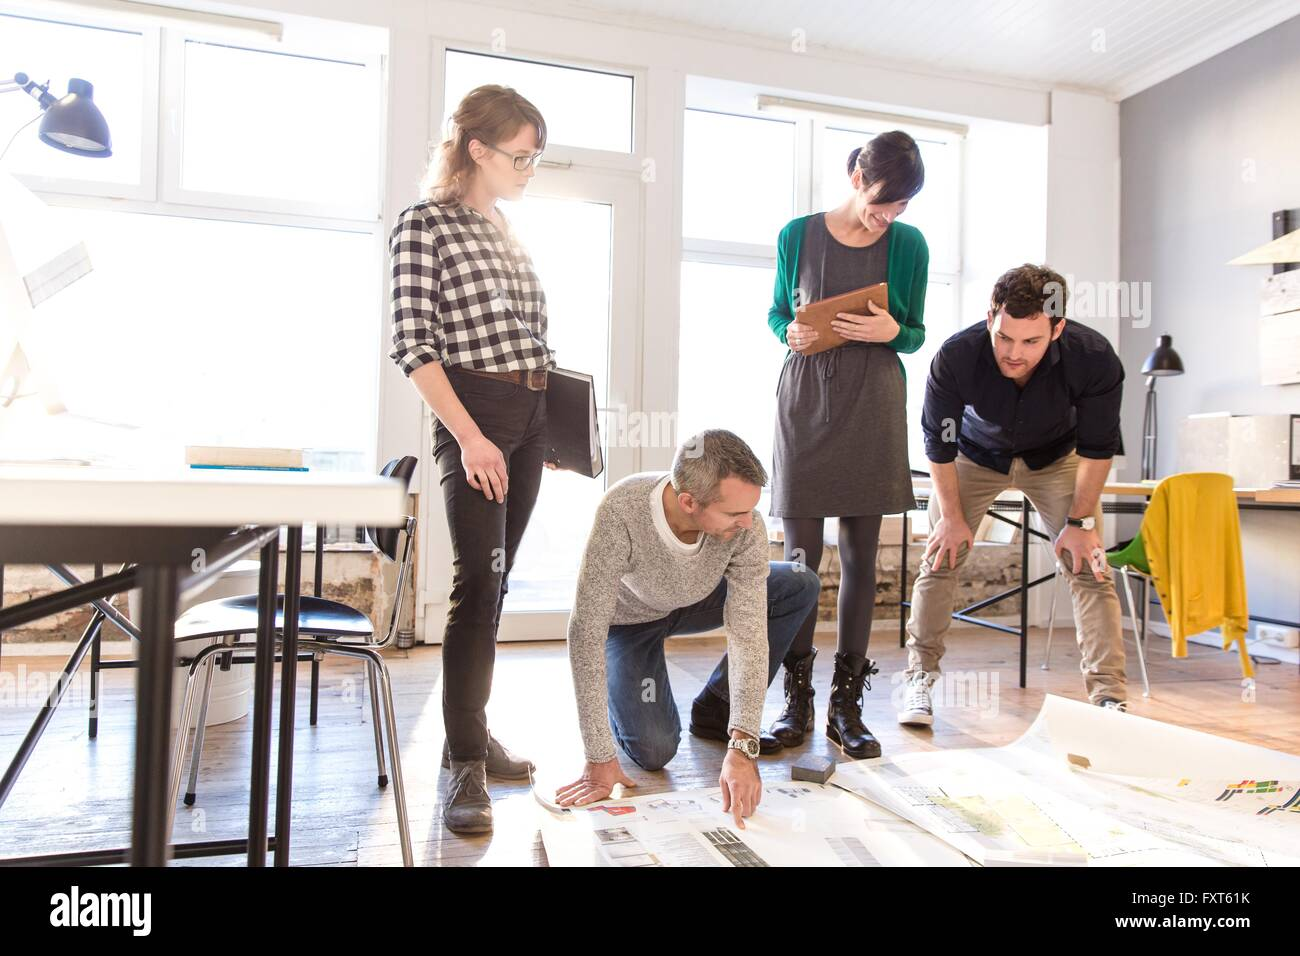 Architects discussing blueprint on office floor - Stock Image